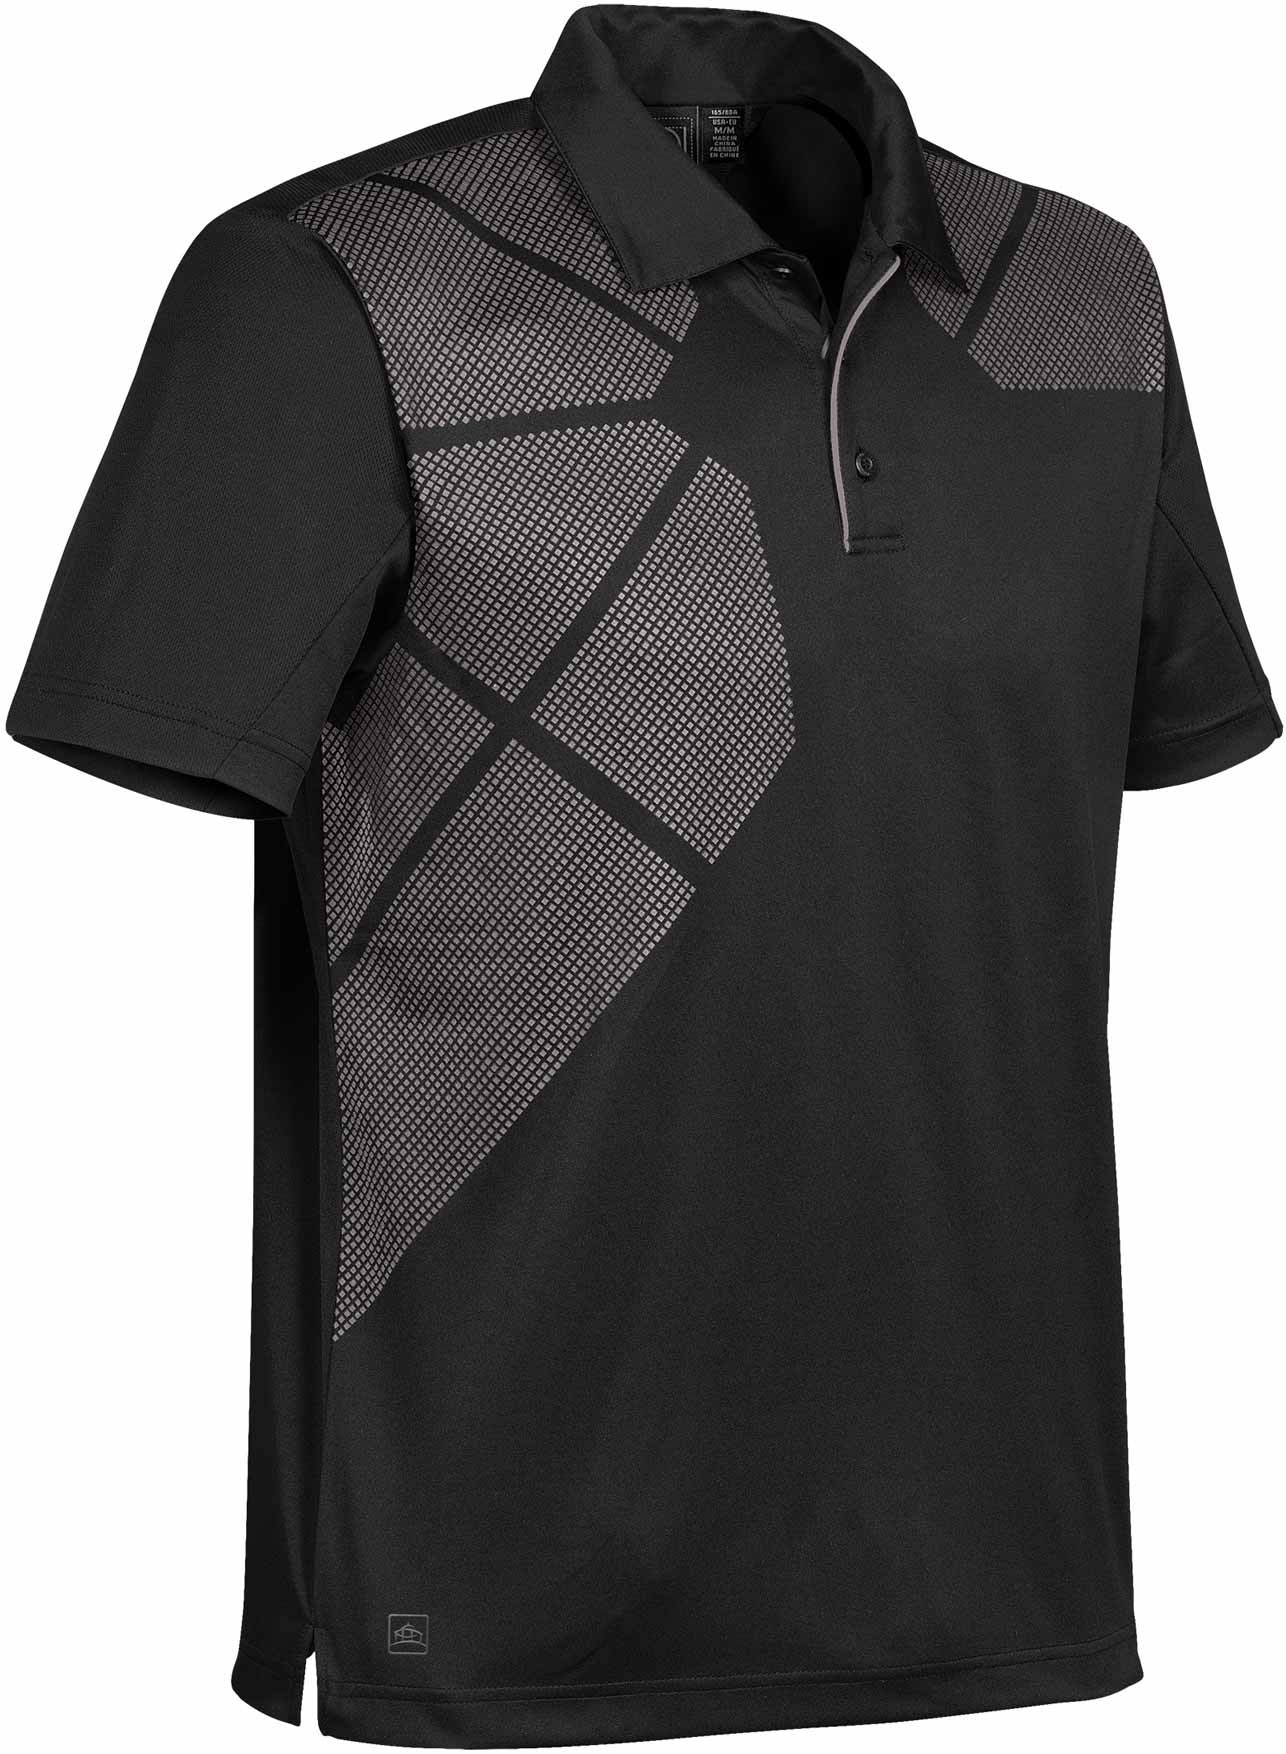 Stormtech Men's Prism Performance Polo